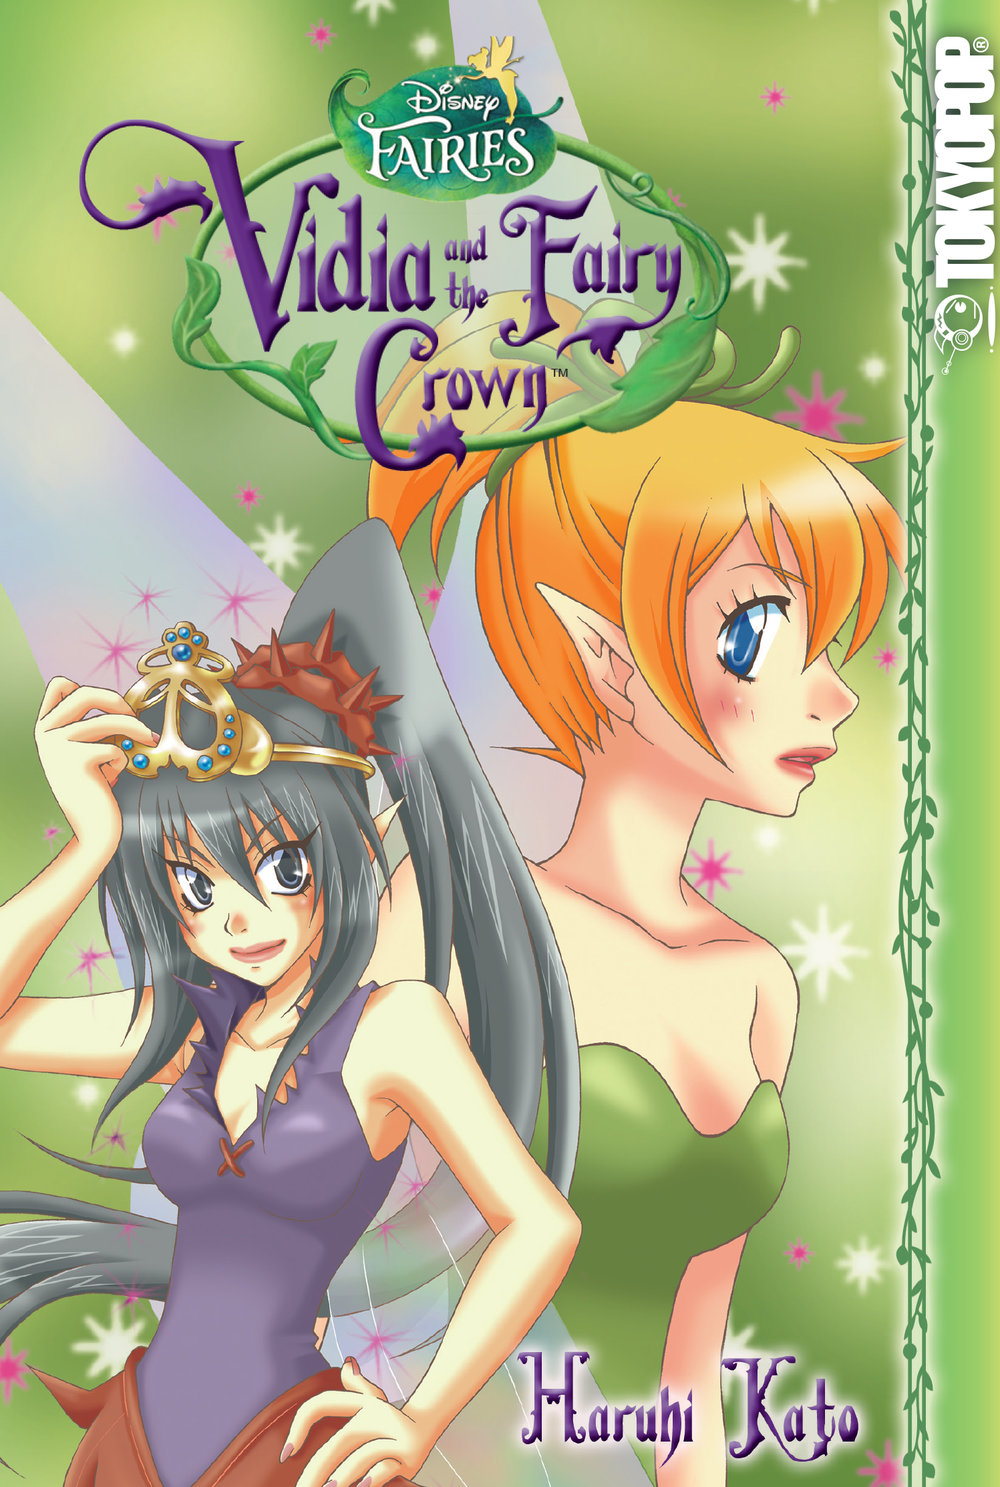 Fairies: Vidia and the Fairy Crown